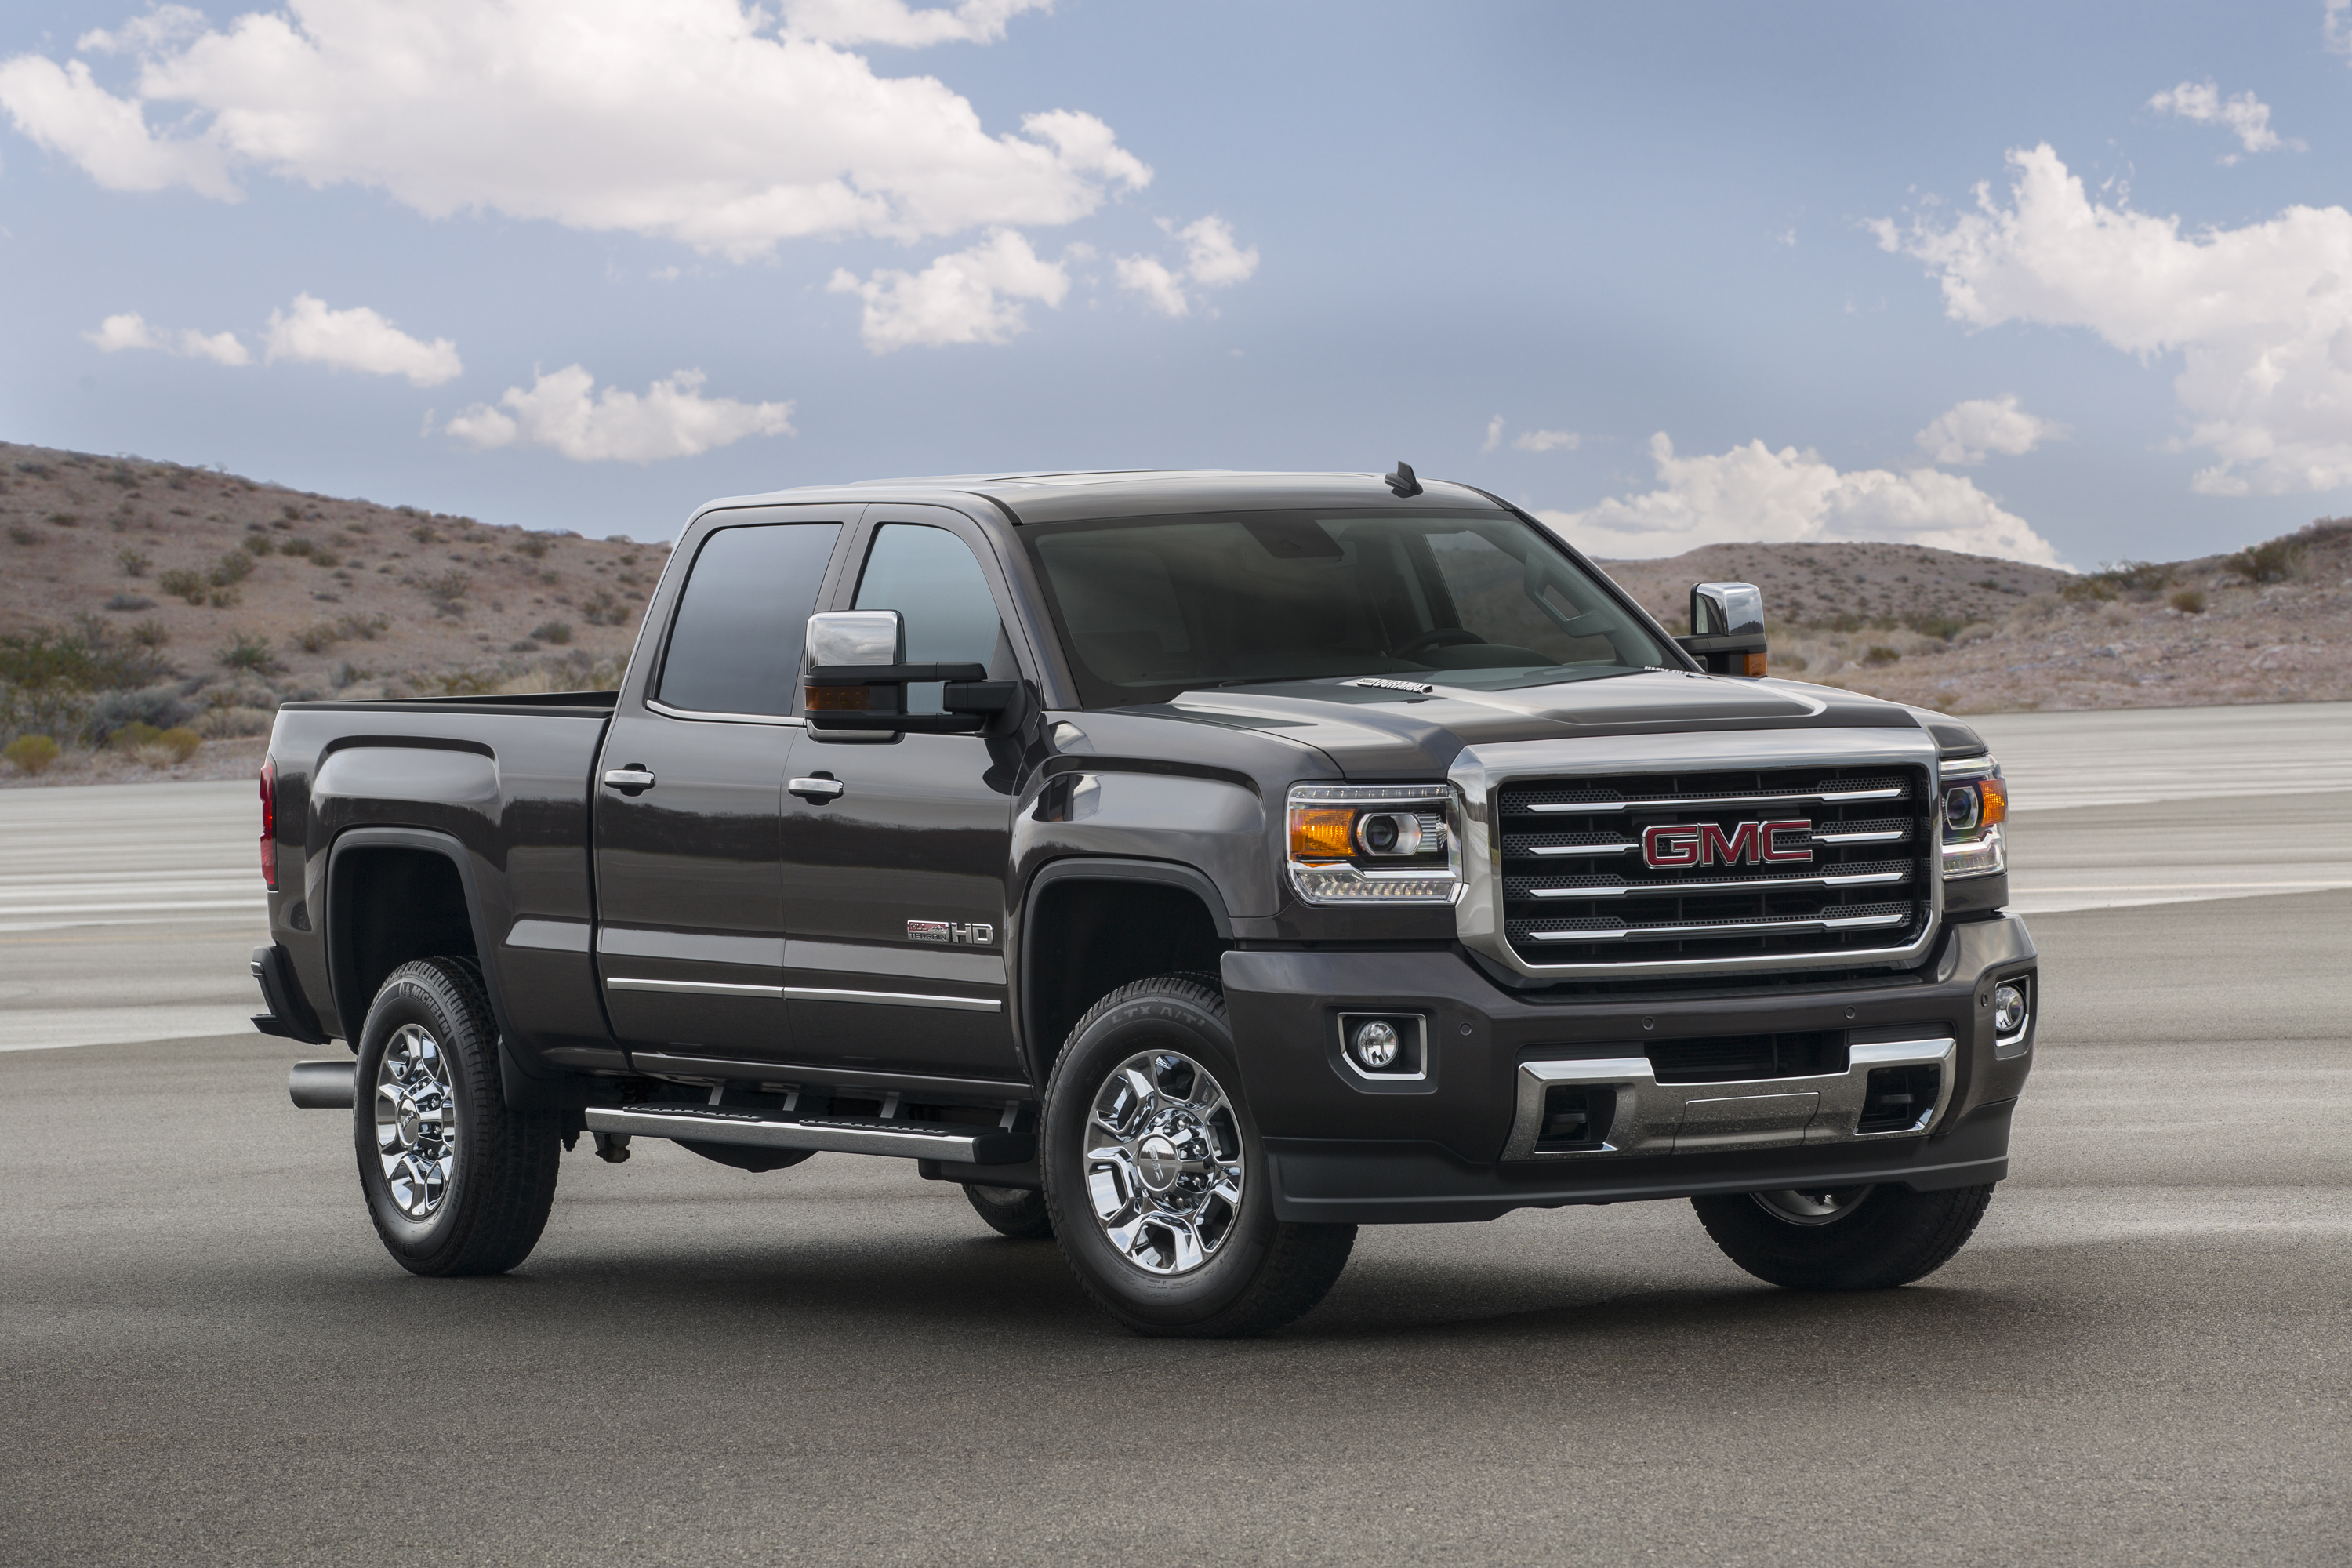 Gmc Introduces 2015 Sierra All Terrain Hd